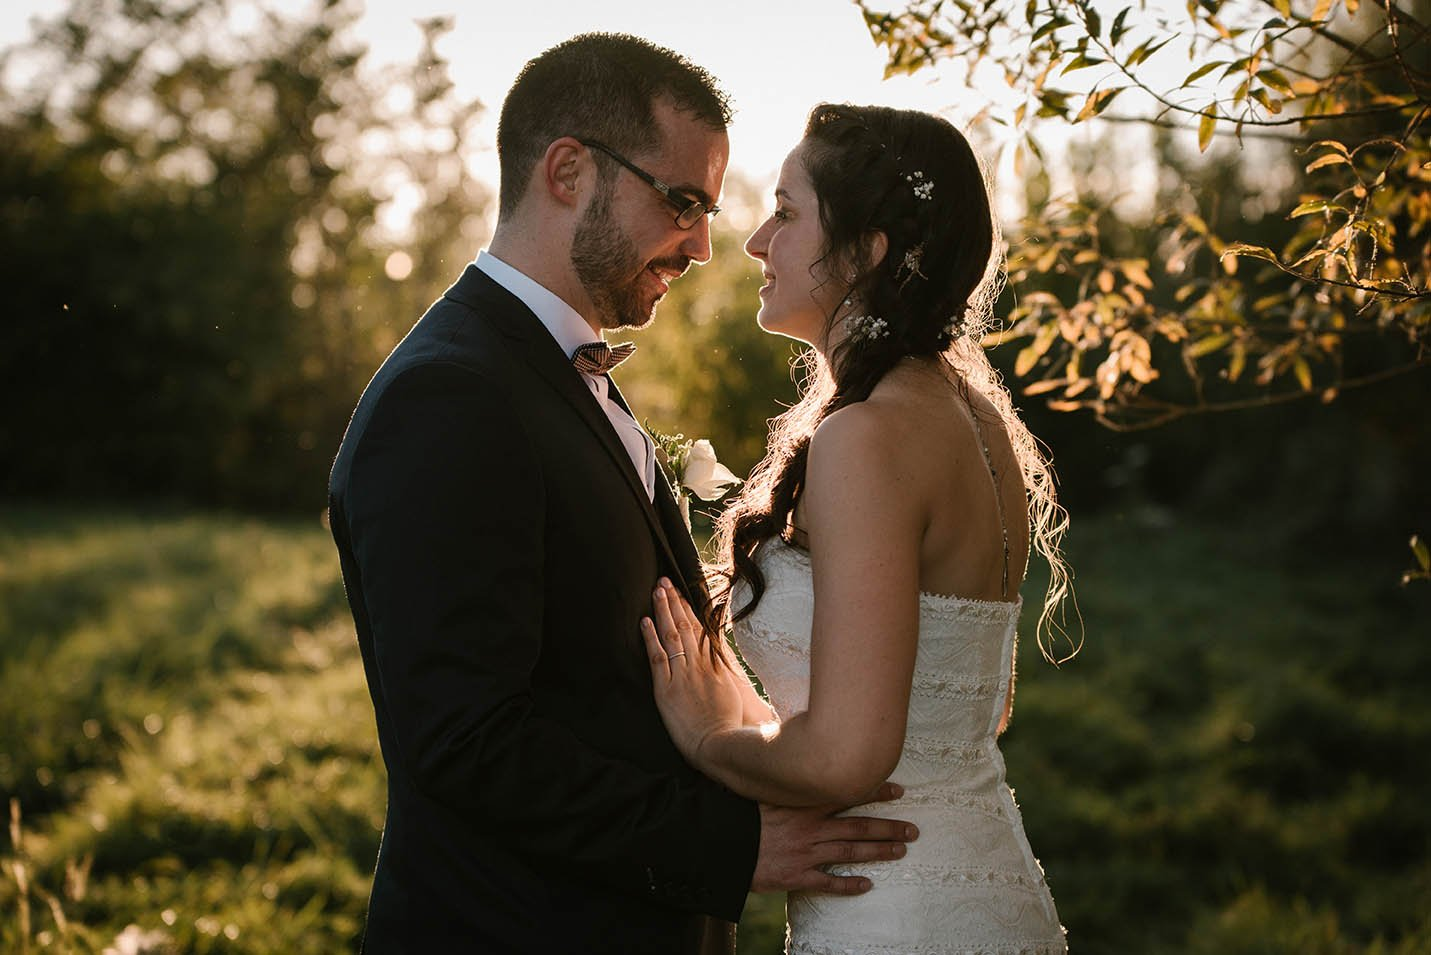 home-priscilliahervier-photographe-mariages-auvergne-allier